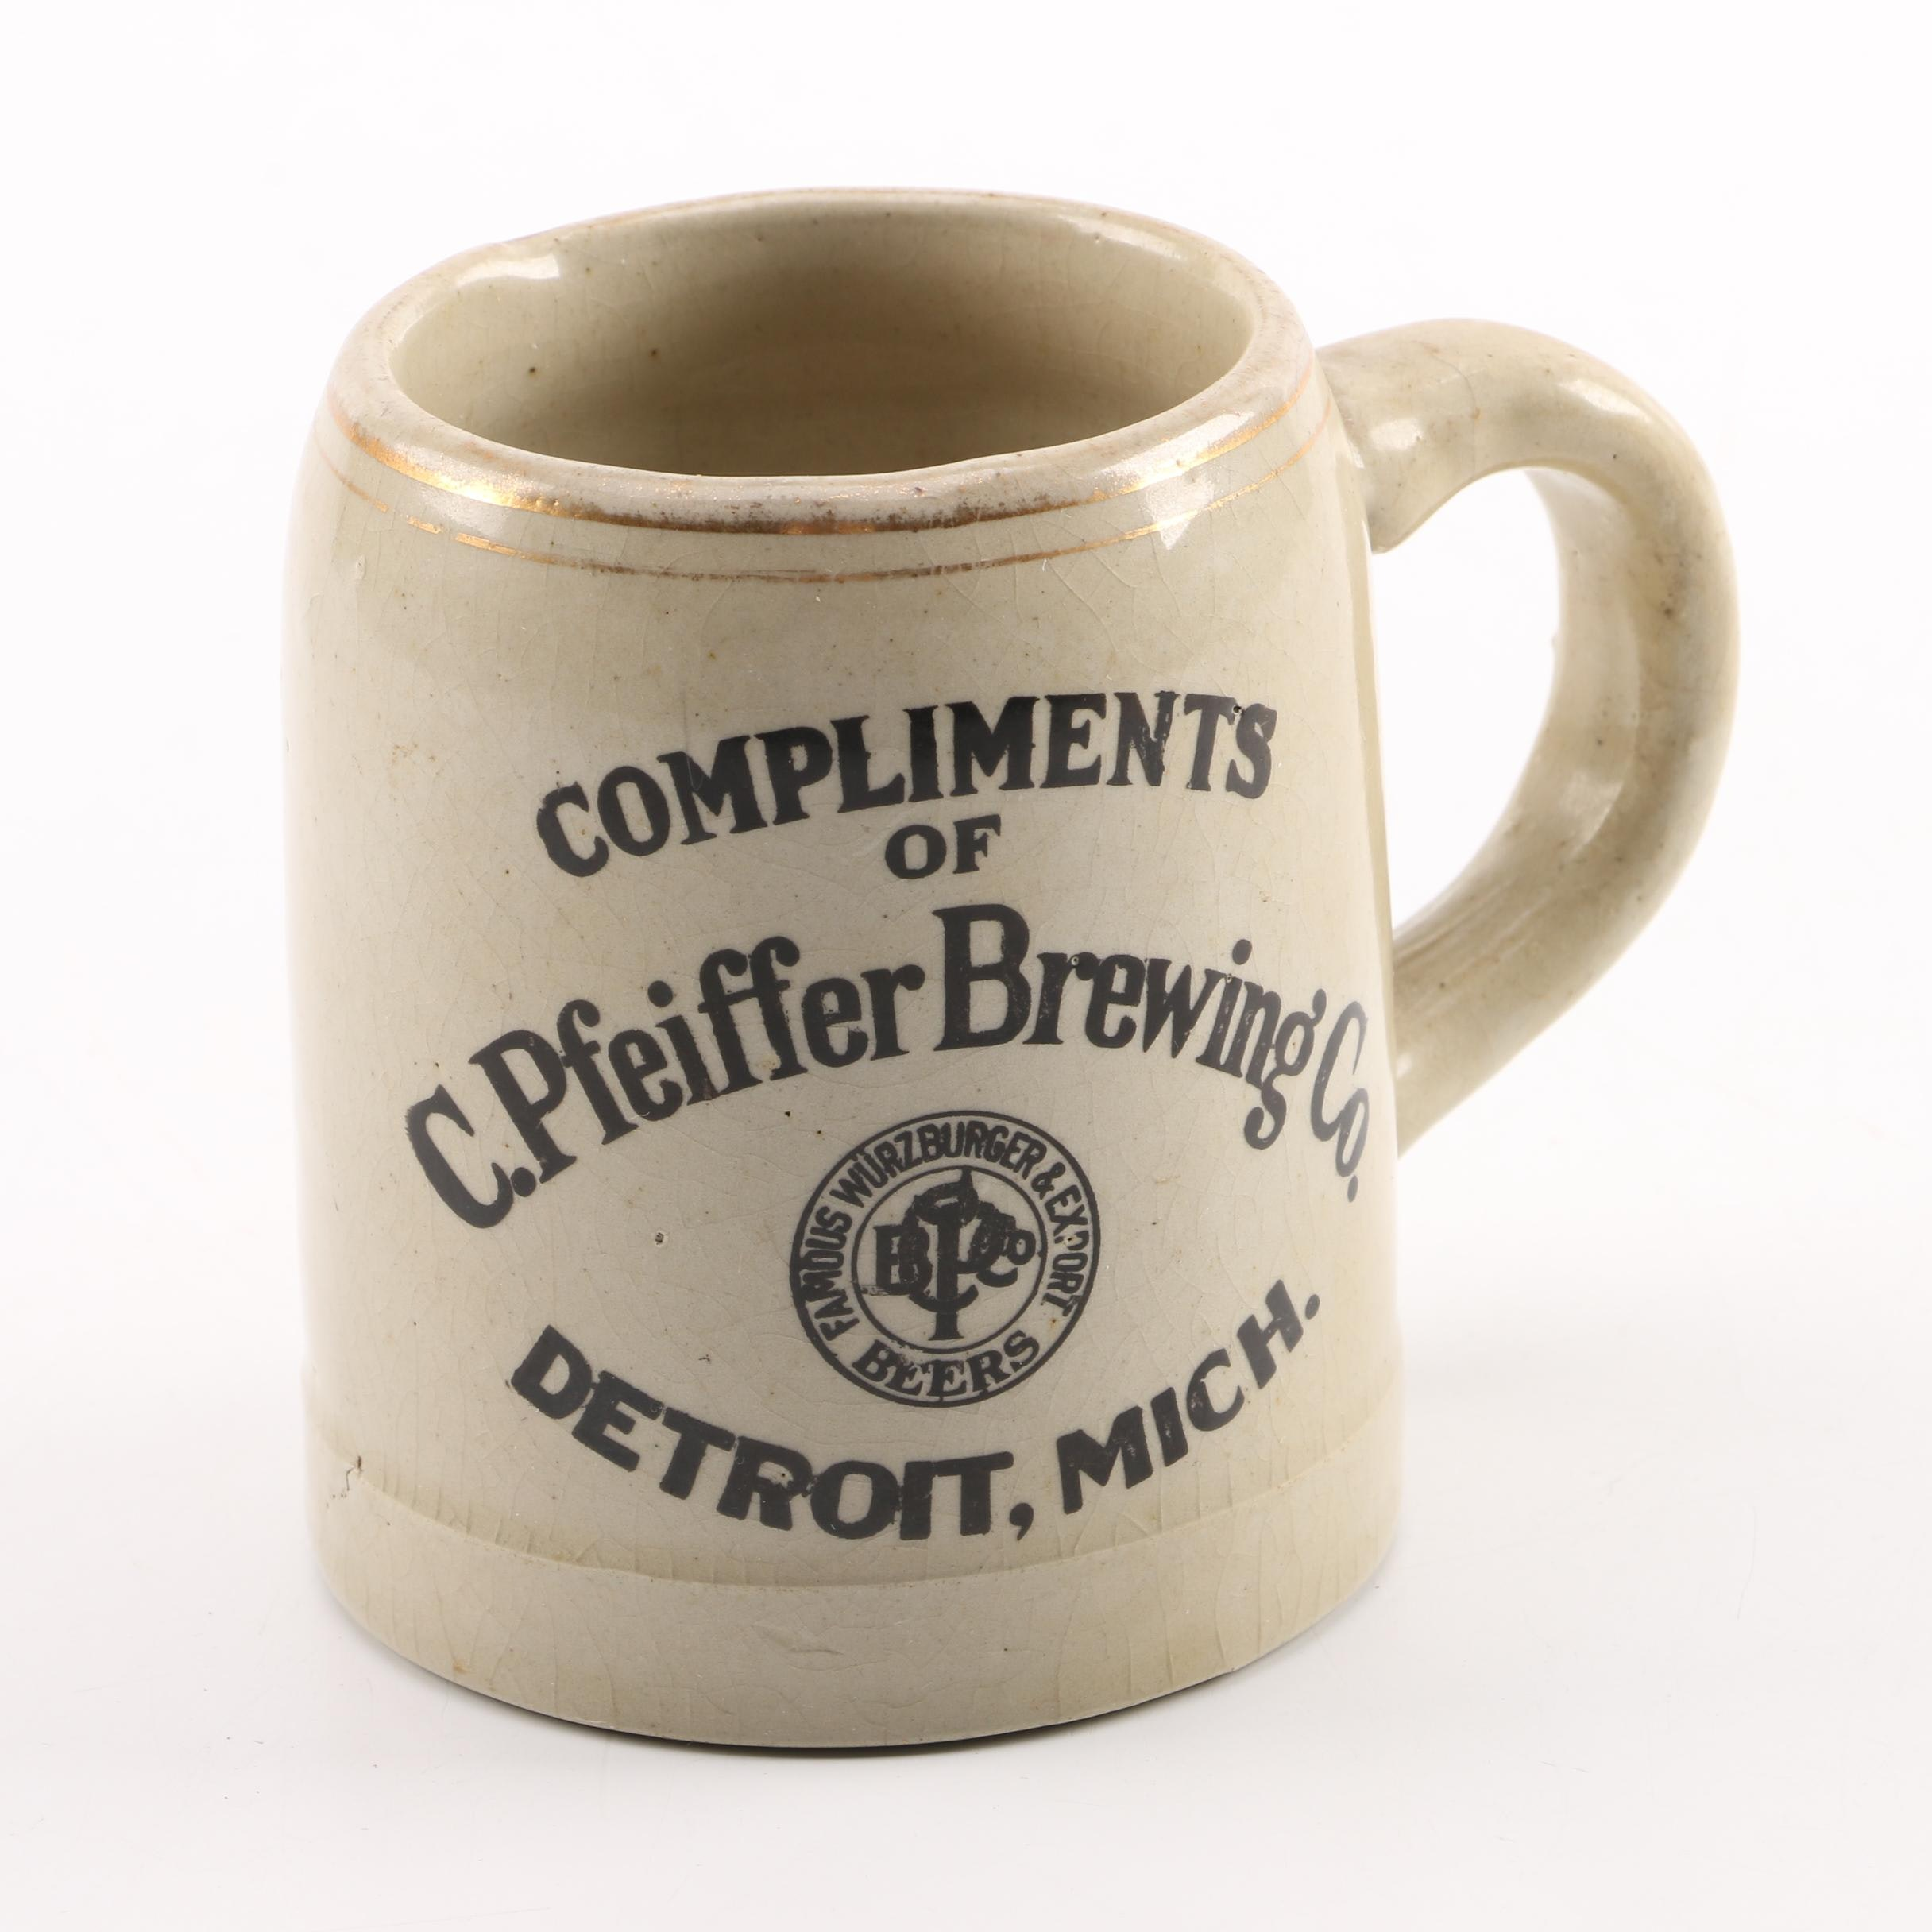 C. Pfeiffer Brewing Co. Ceramic Mug